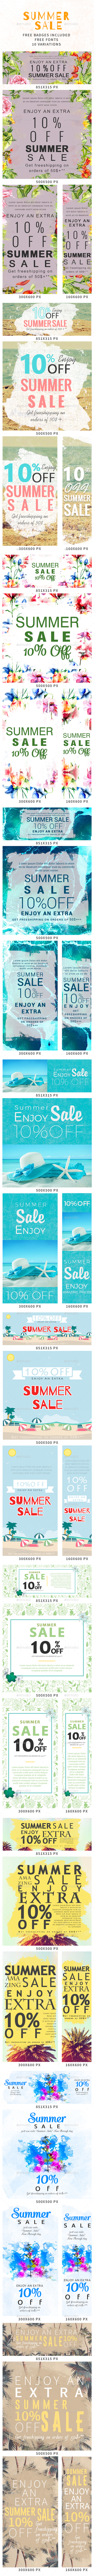 Summer Sale - Banners - Banners & Ads Web Elements